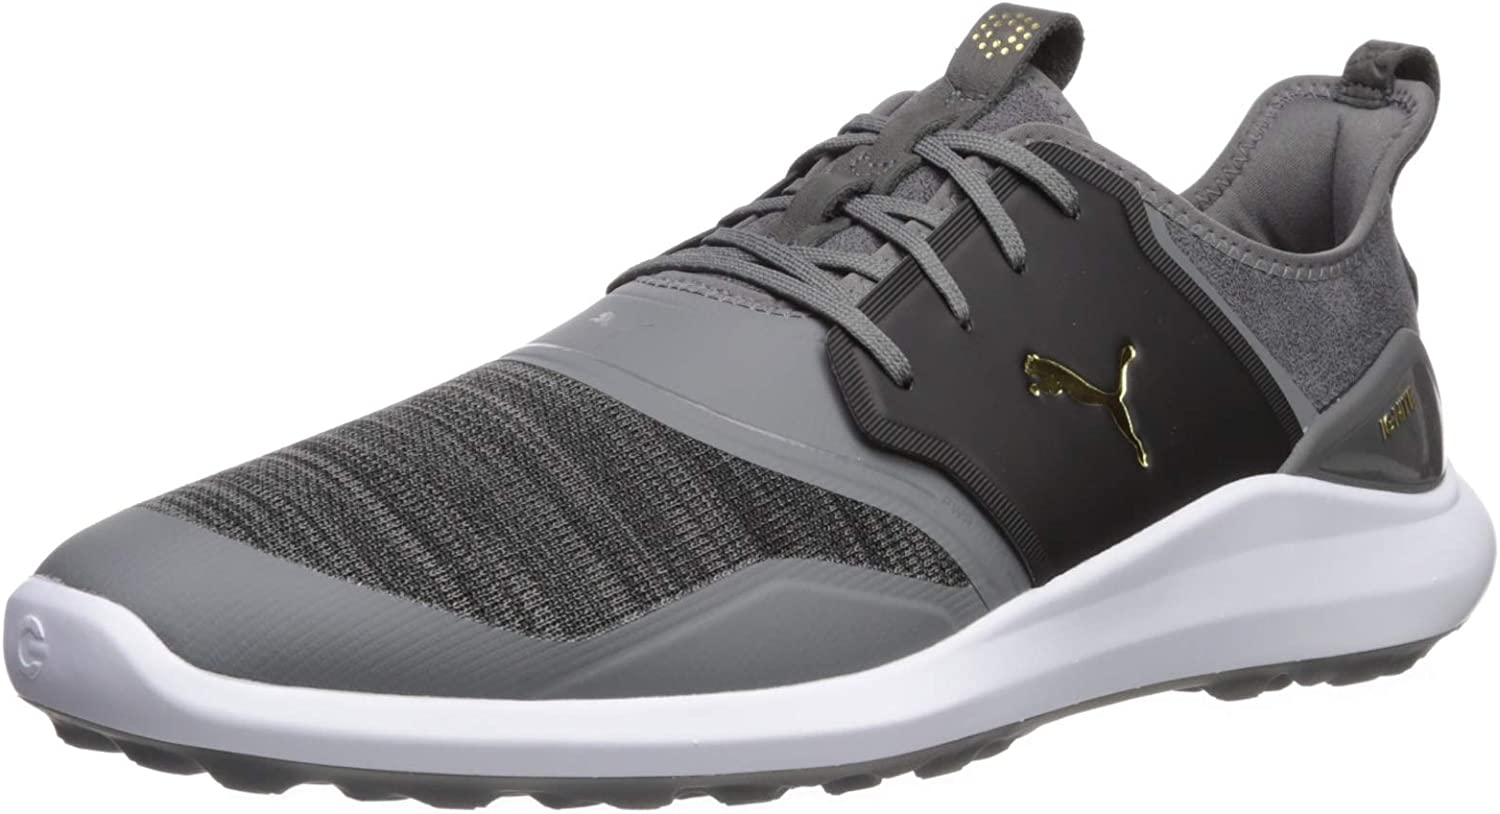 PUMA Cheap Men's Ignite Cheap mail order specialty store Nxt Golf Shoe Lace